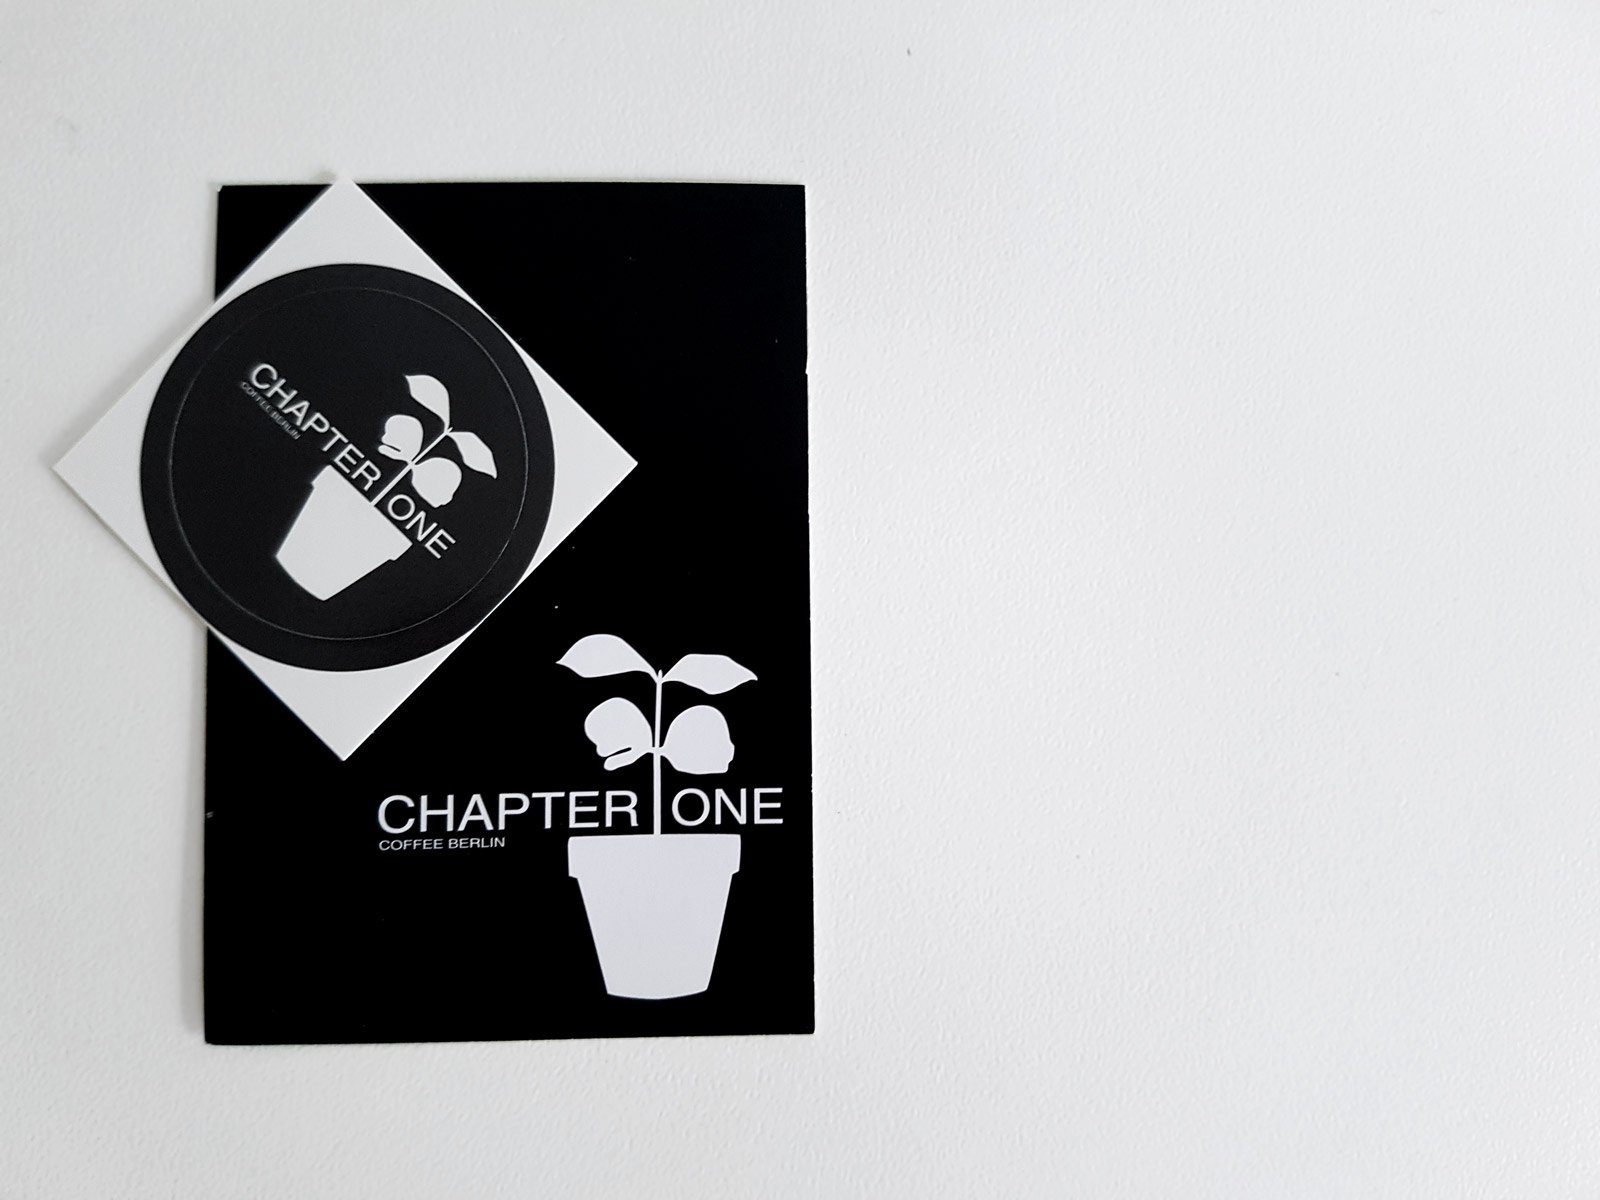 Chapter One Café in Berlin Kreuzberg